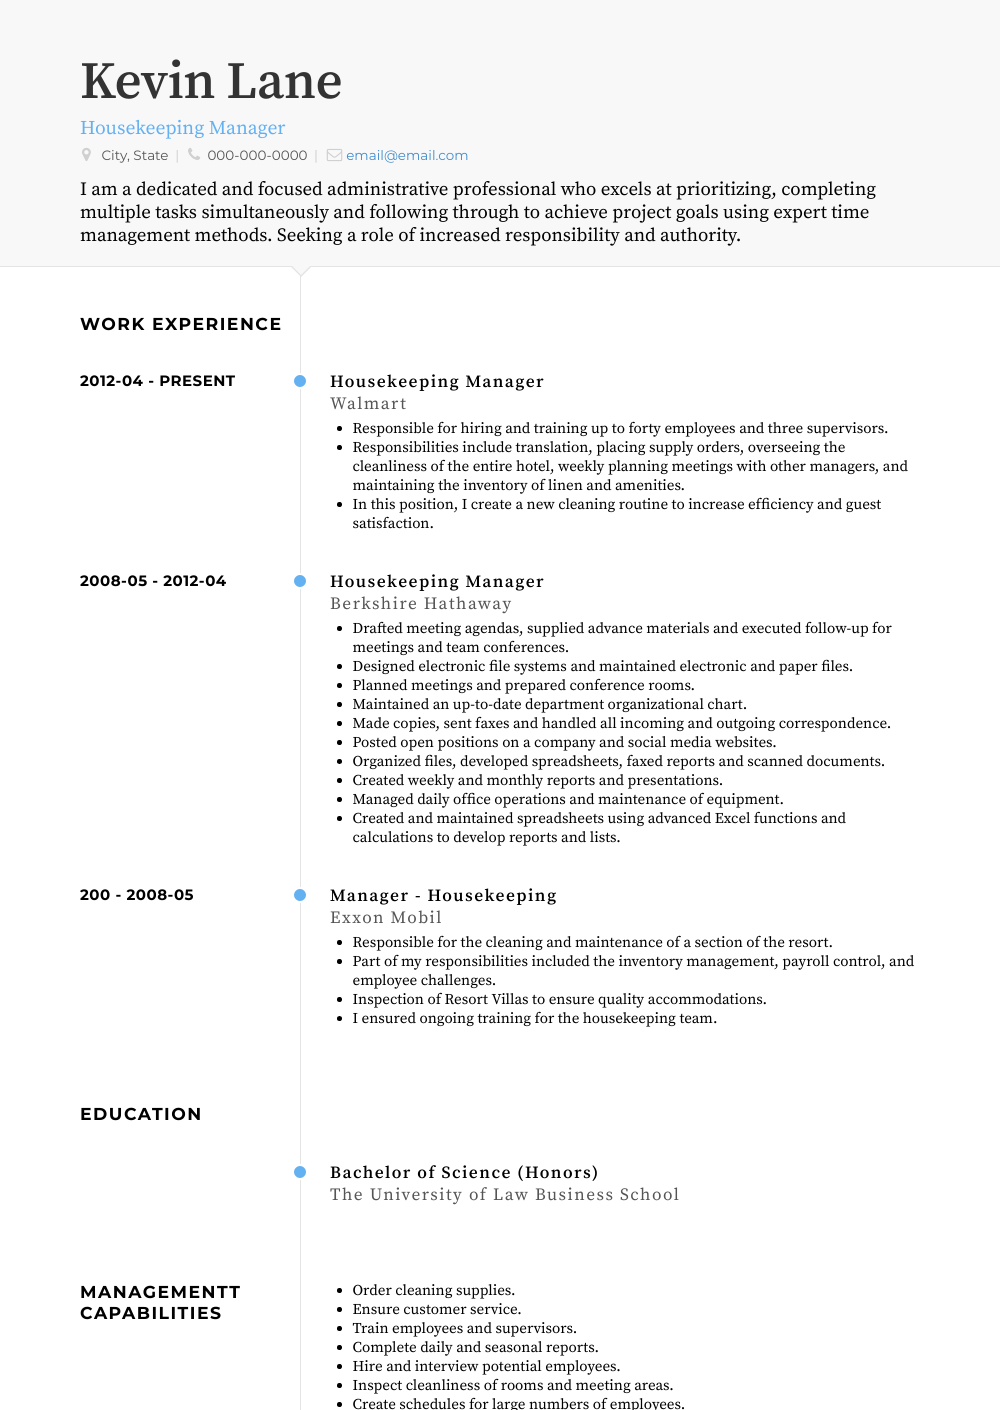 Housekeeping Manager Resume Sample and Template